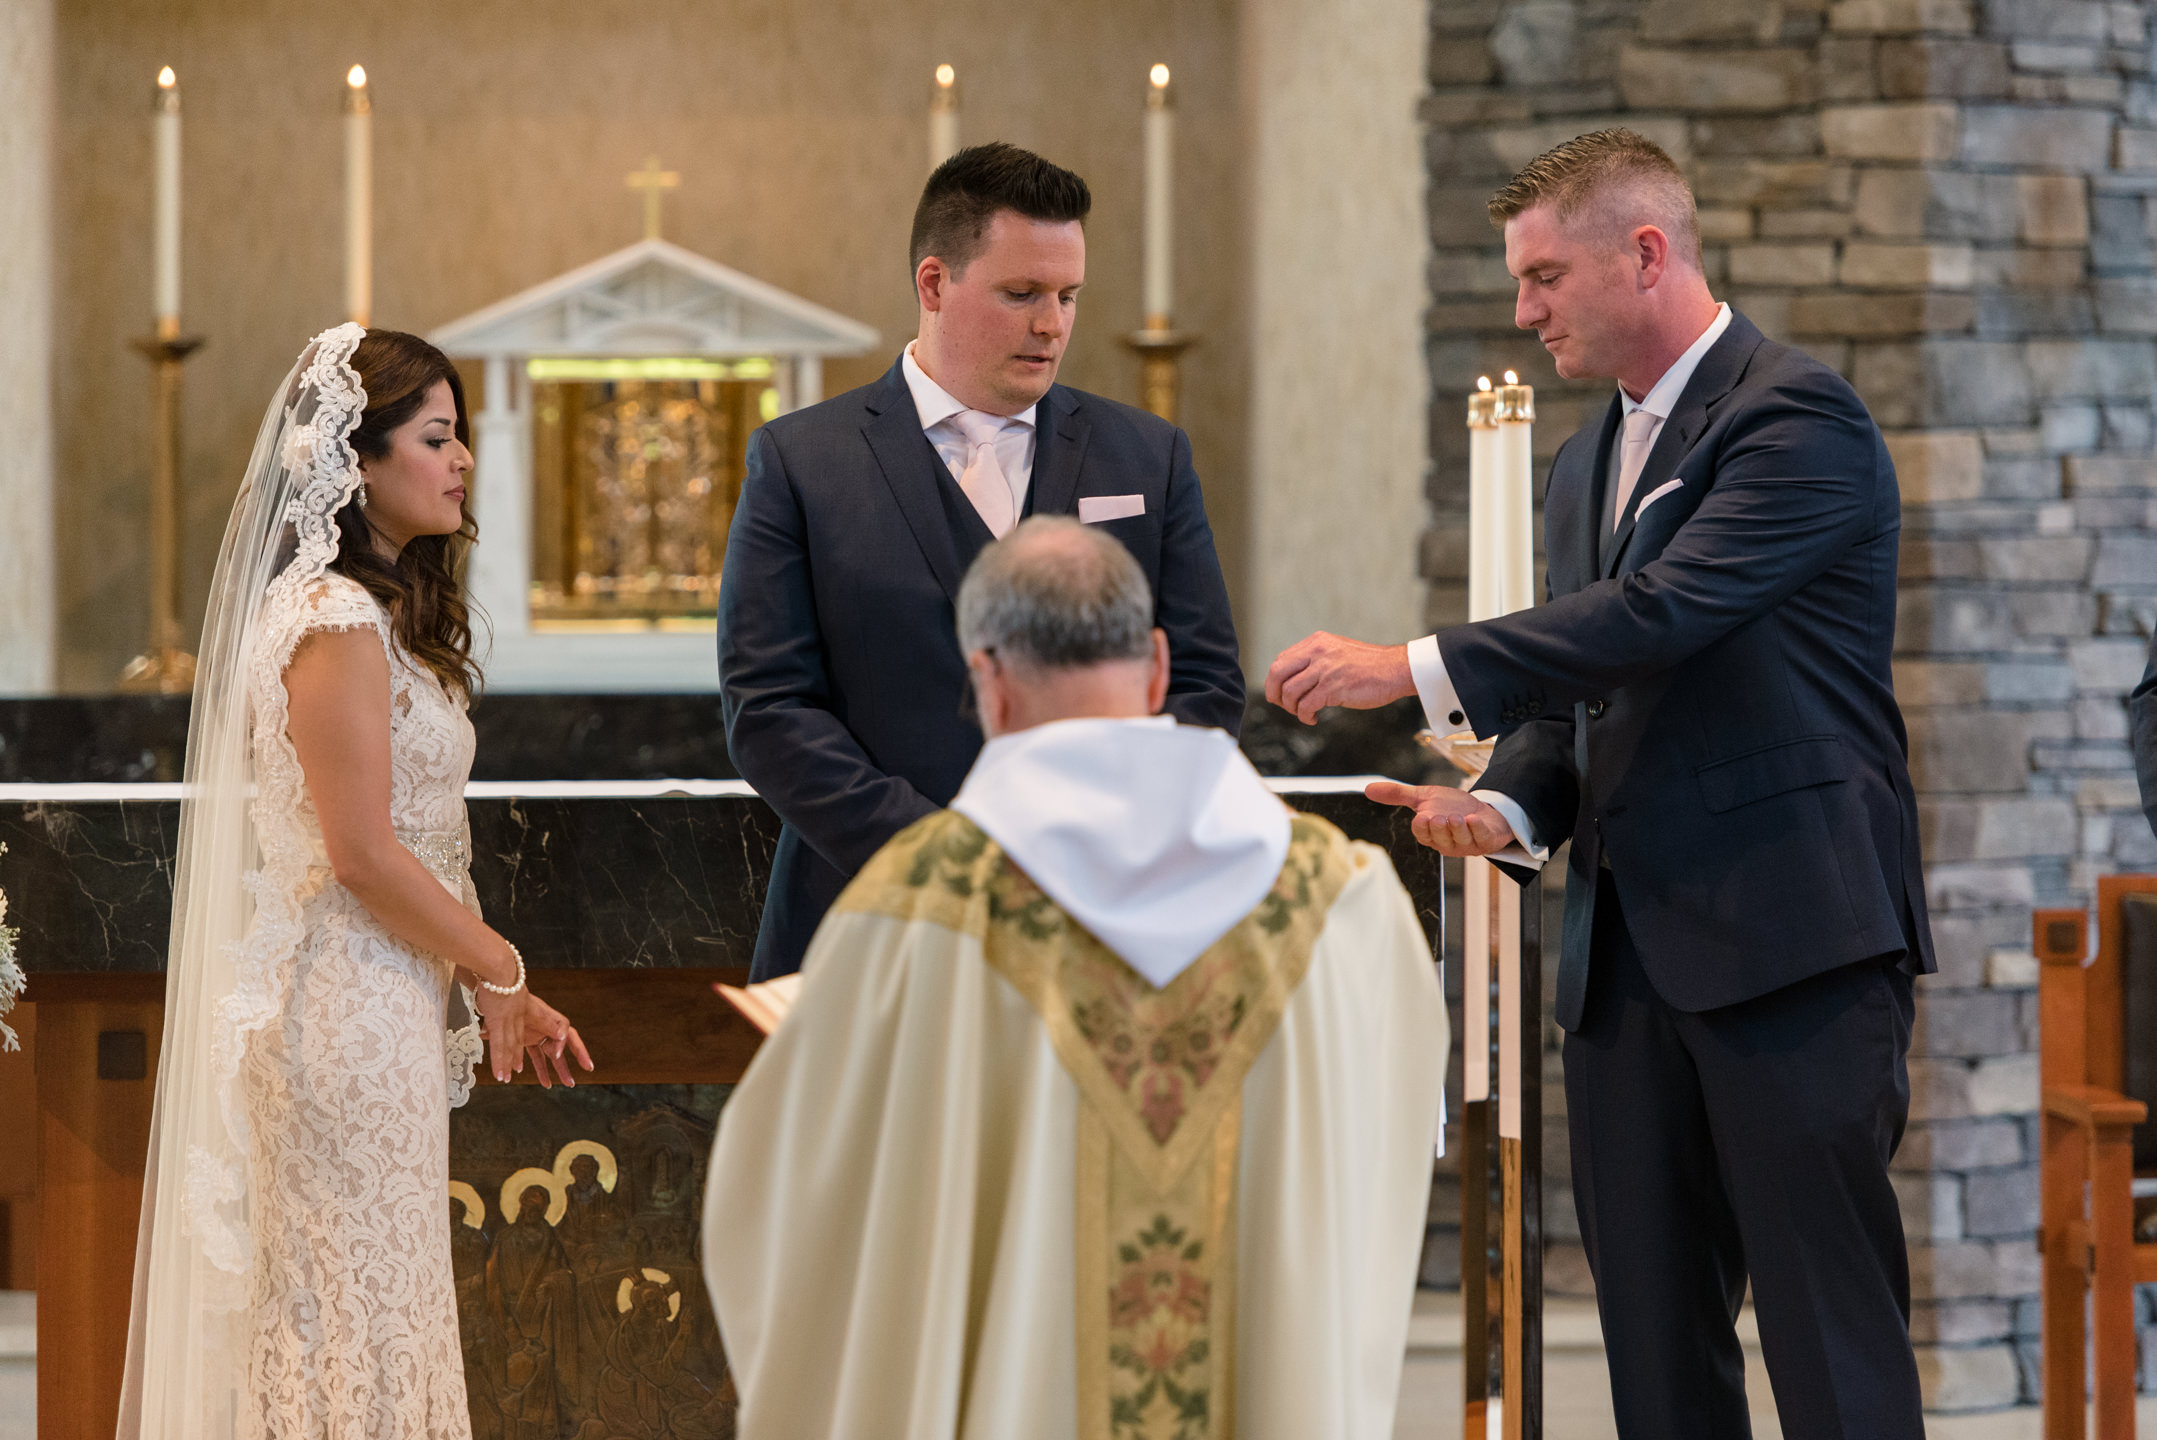 Best Man Gives Rings to Groom during Wedding Ceremony at Saint Theresa of Calcutta